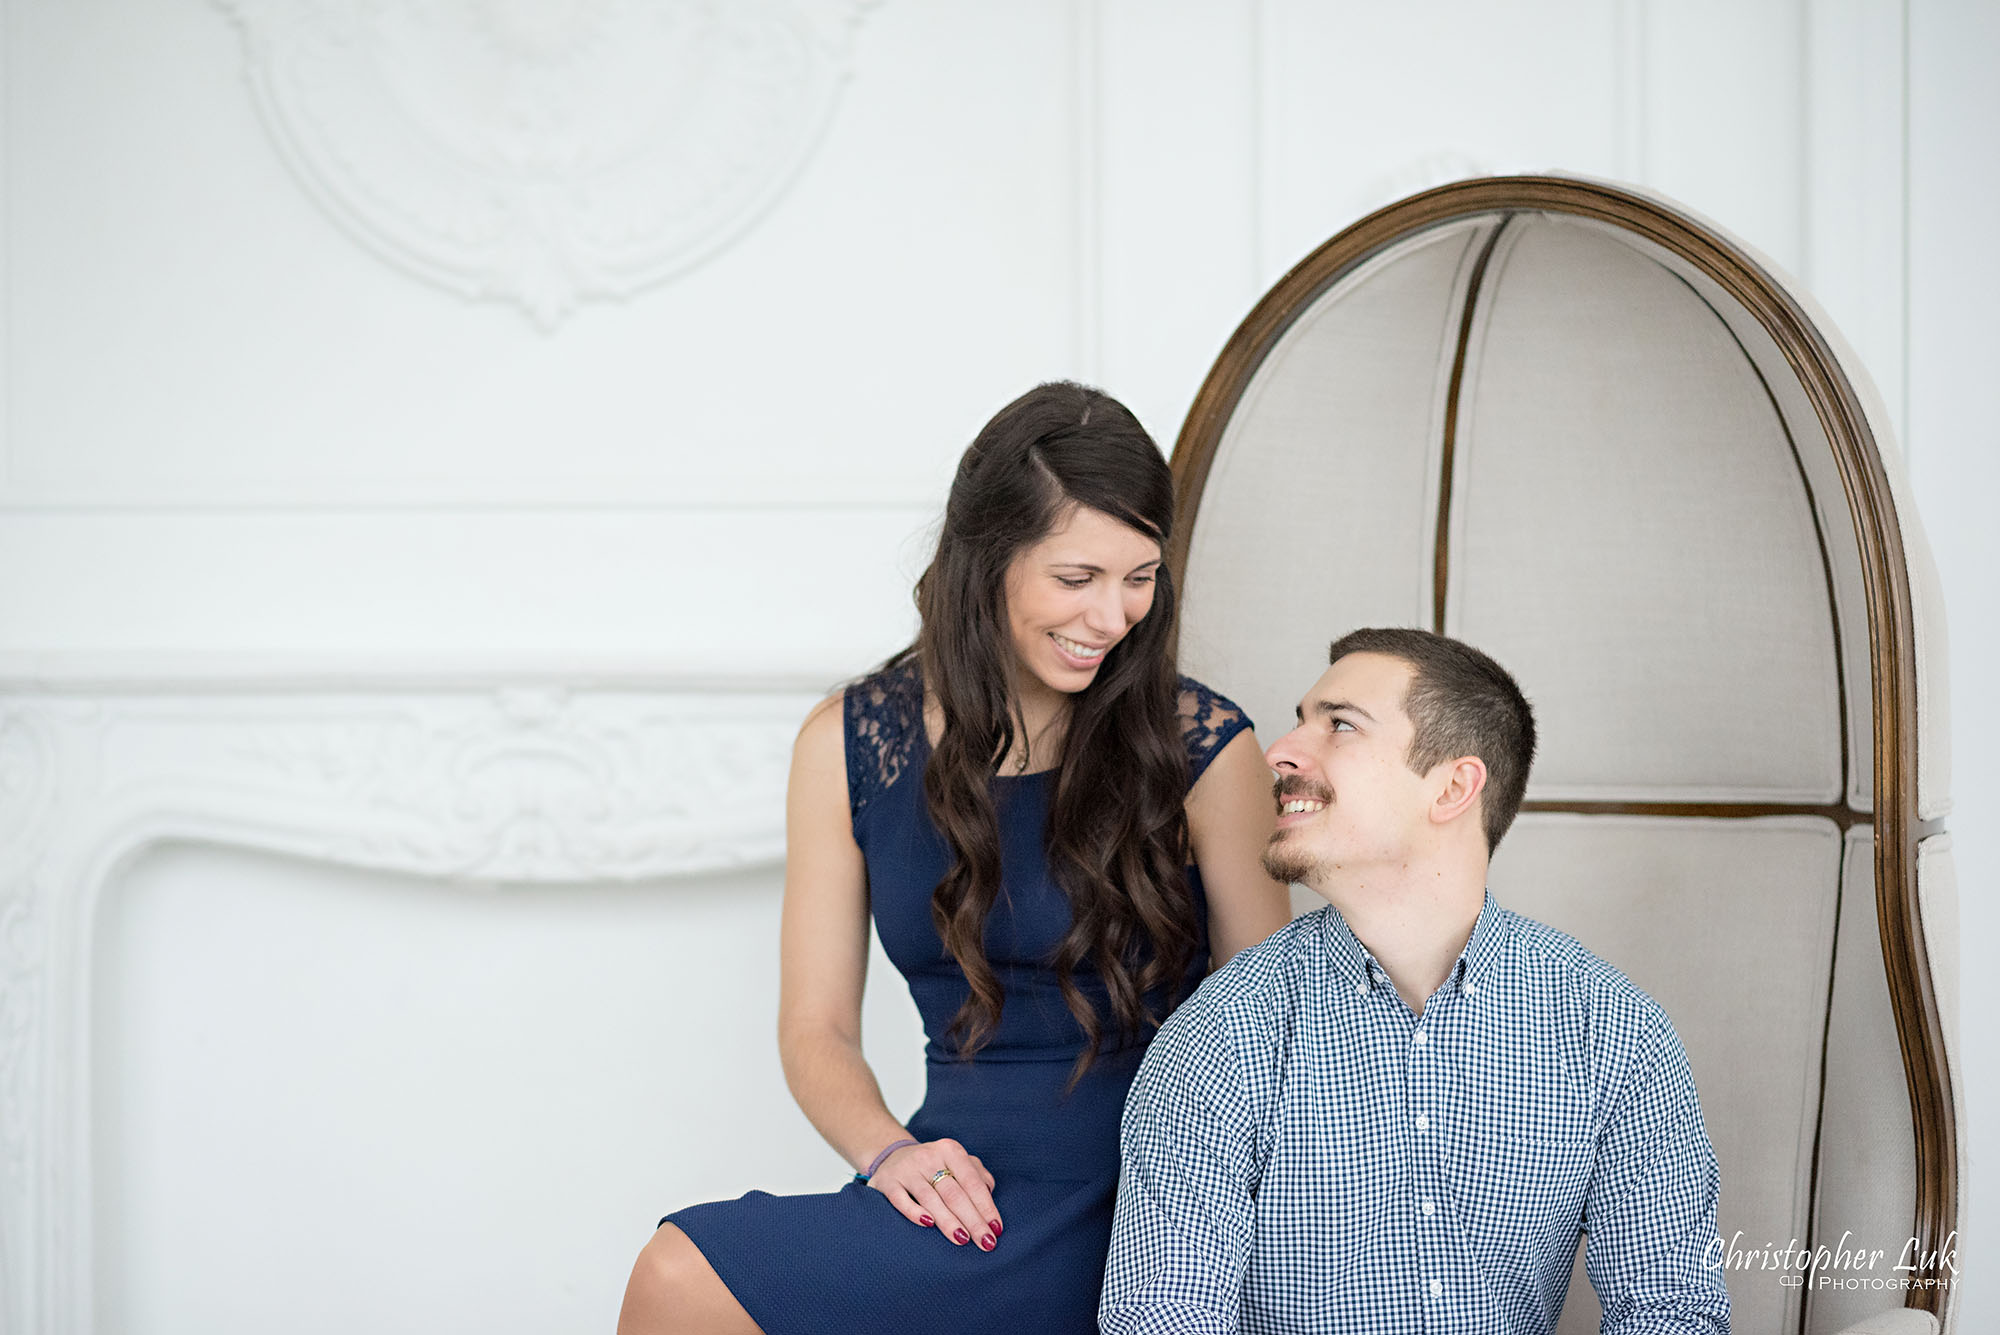 Christopher Luk Toronto Wedding Photographer Mint Room Studios Conservatory Engagement Session Winter Indoor Natural Light Candid Photojournalistic Bride Groom Beige Dome Chair Smile